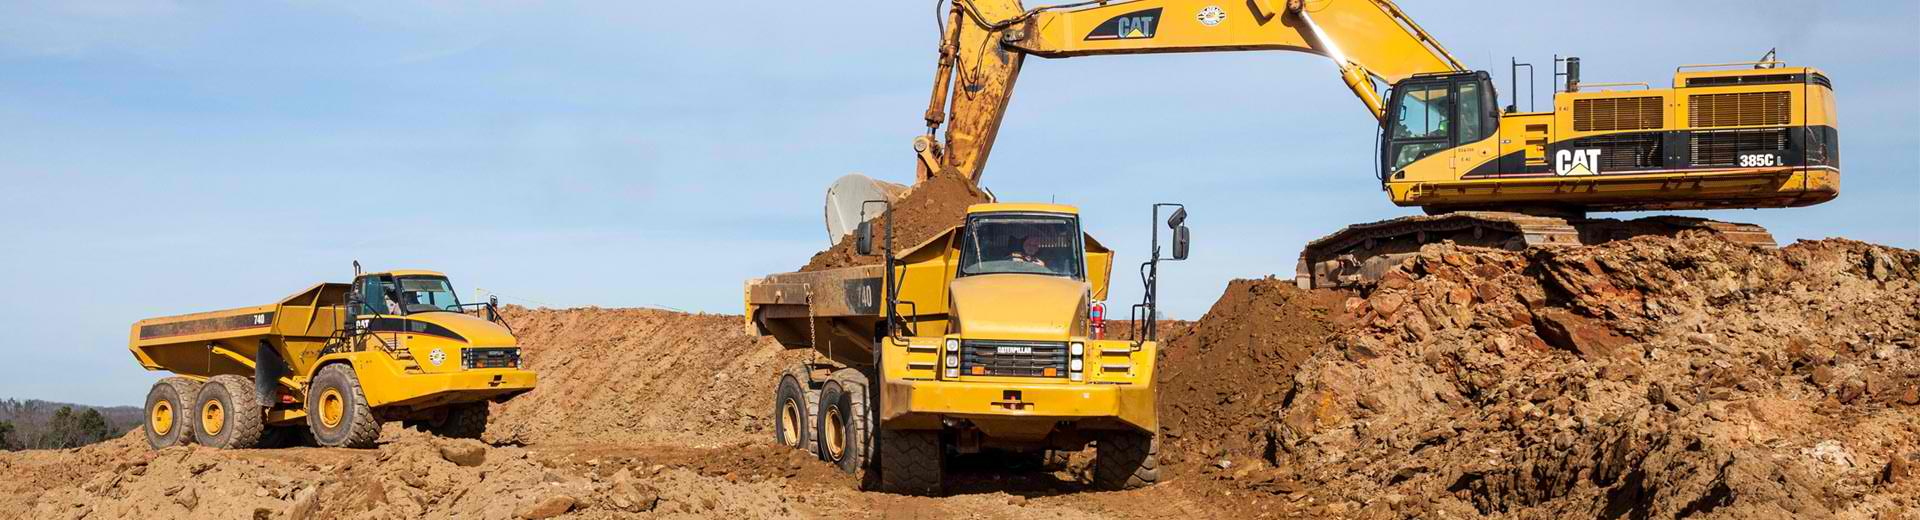 Excavator Operator Civil sites Standards Sydney NSW